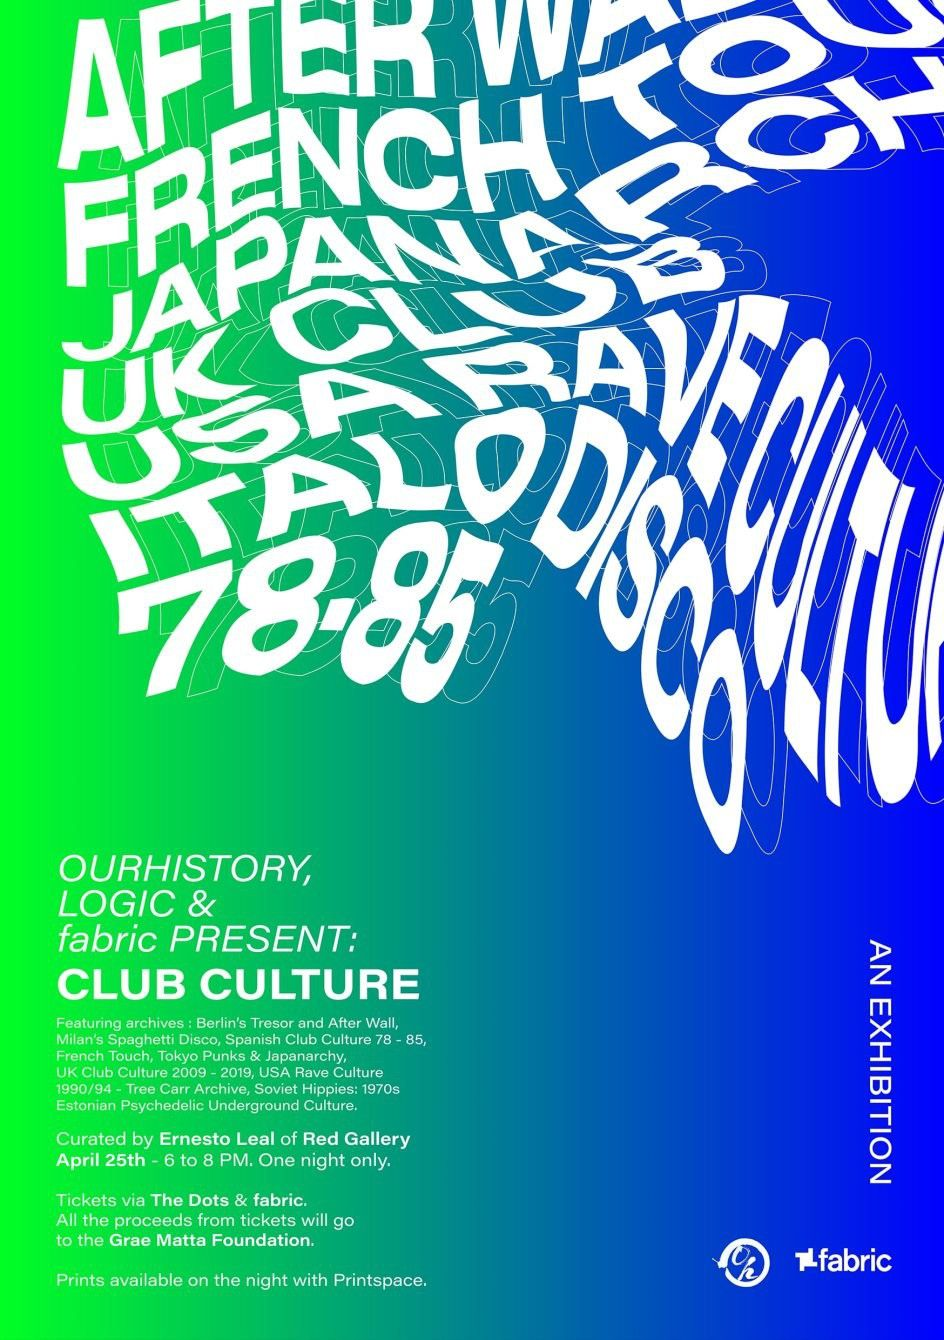 Club Culture - Exhibition at fabric in London